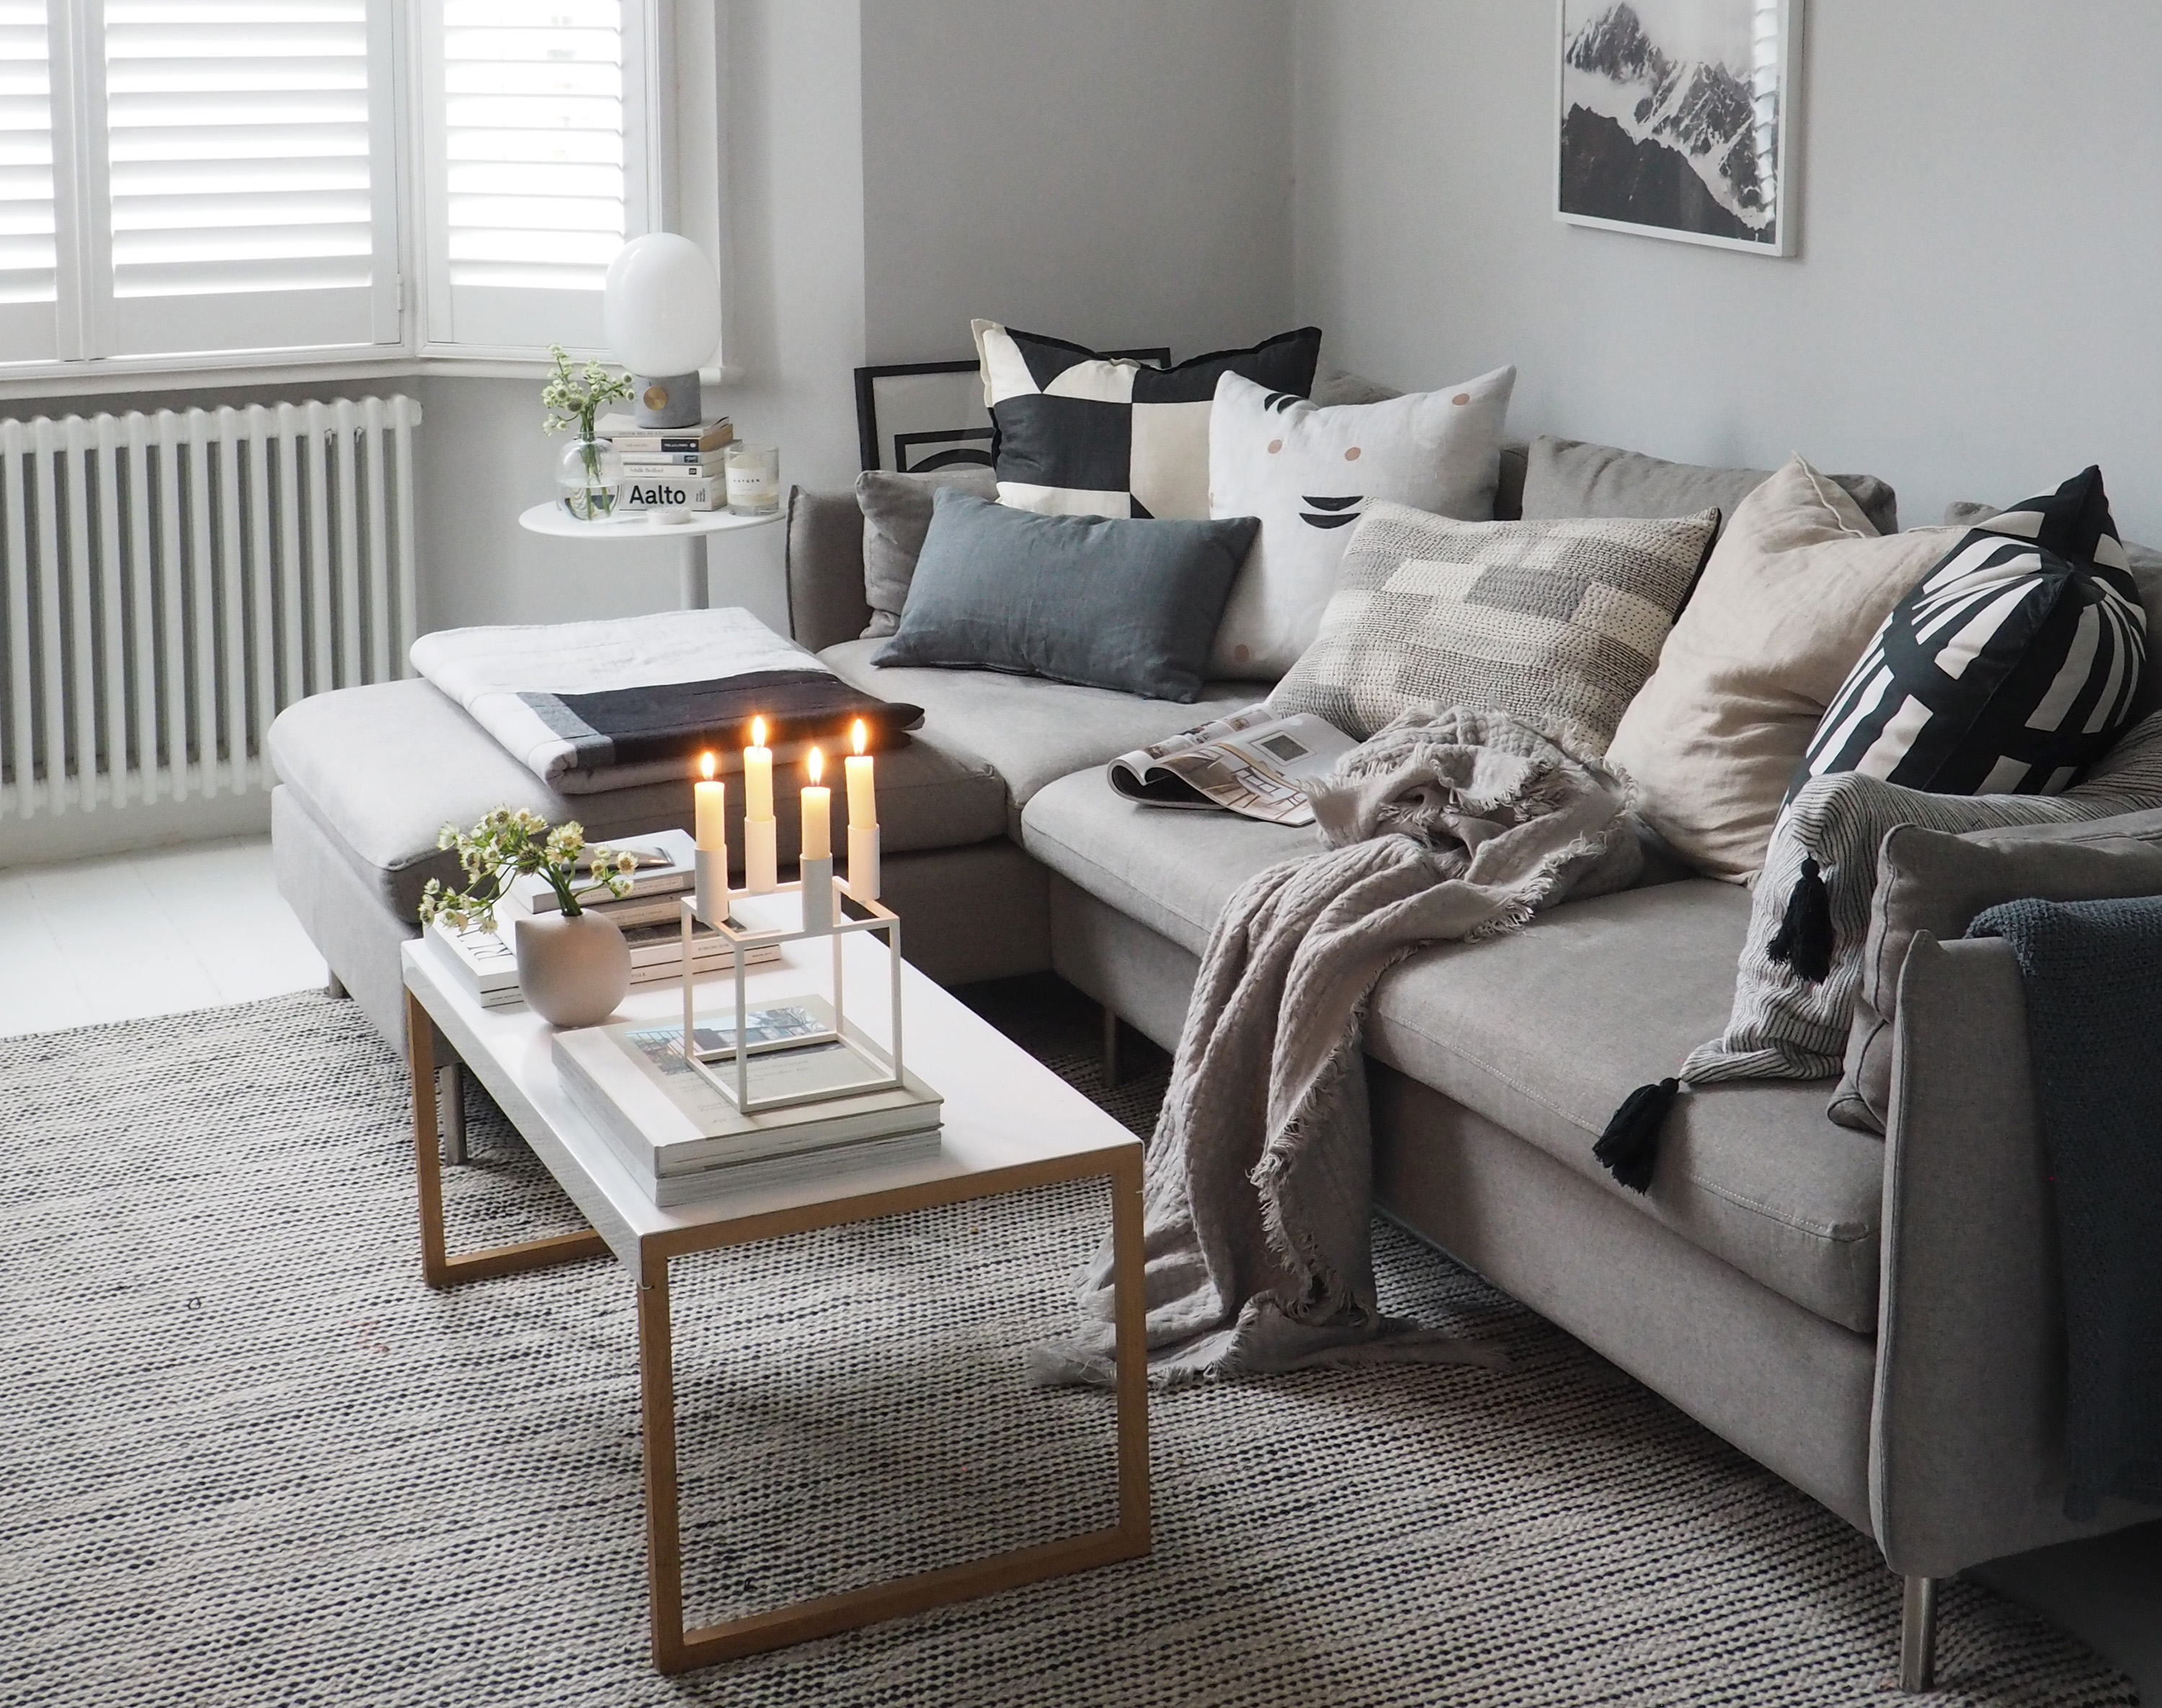 8 steps to making your living room feel cosy - catesthill.com